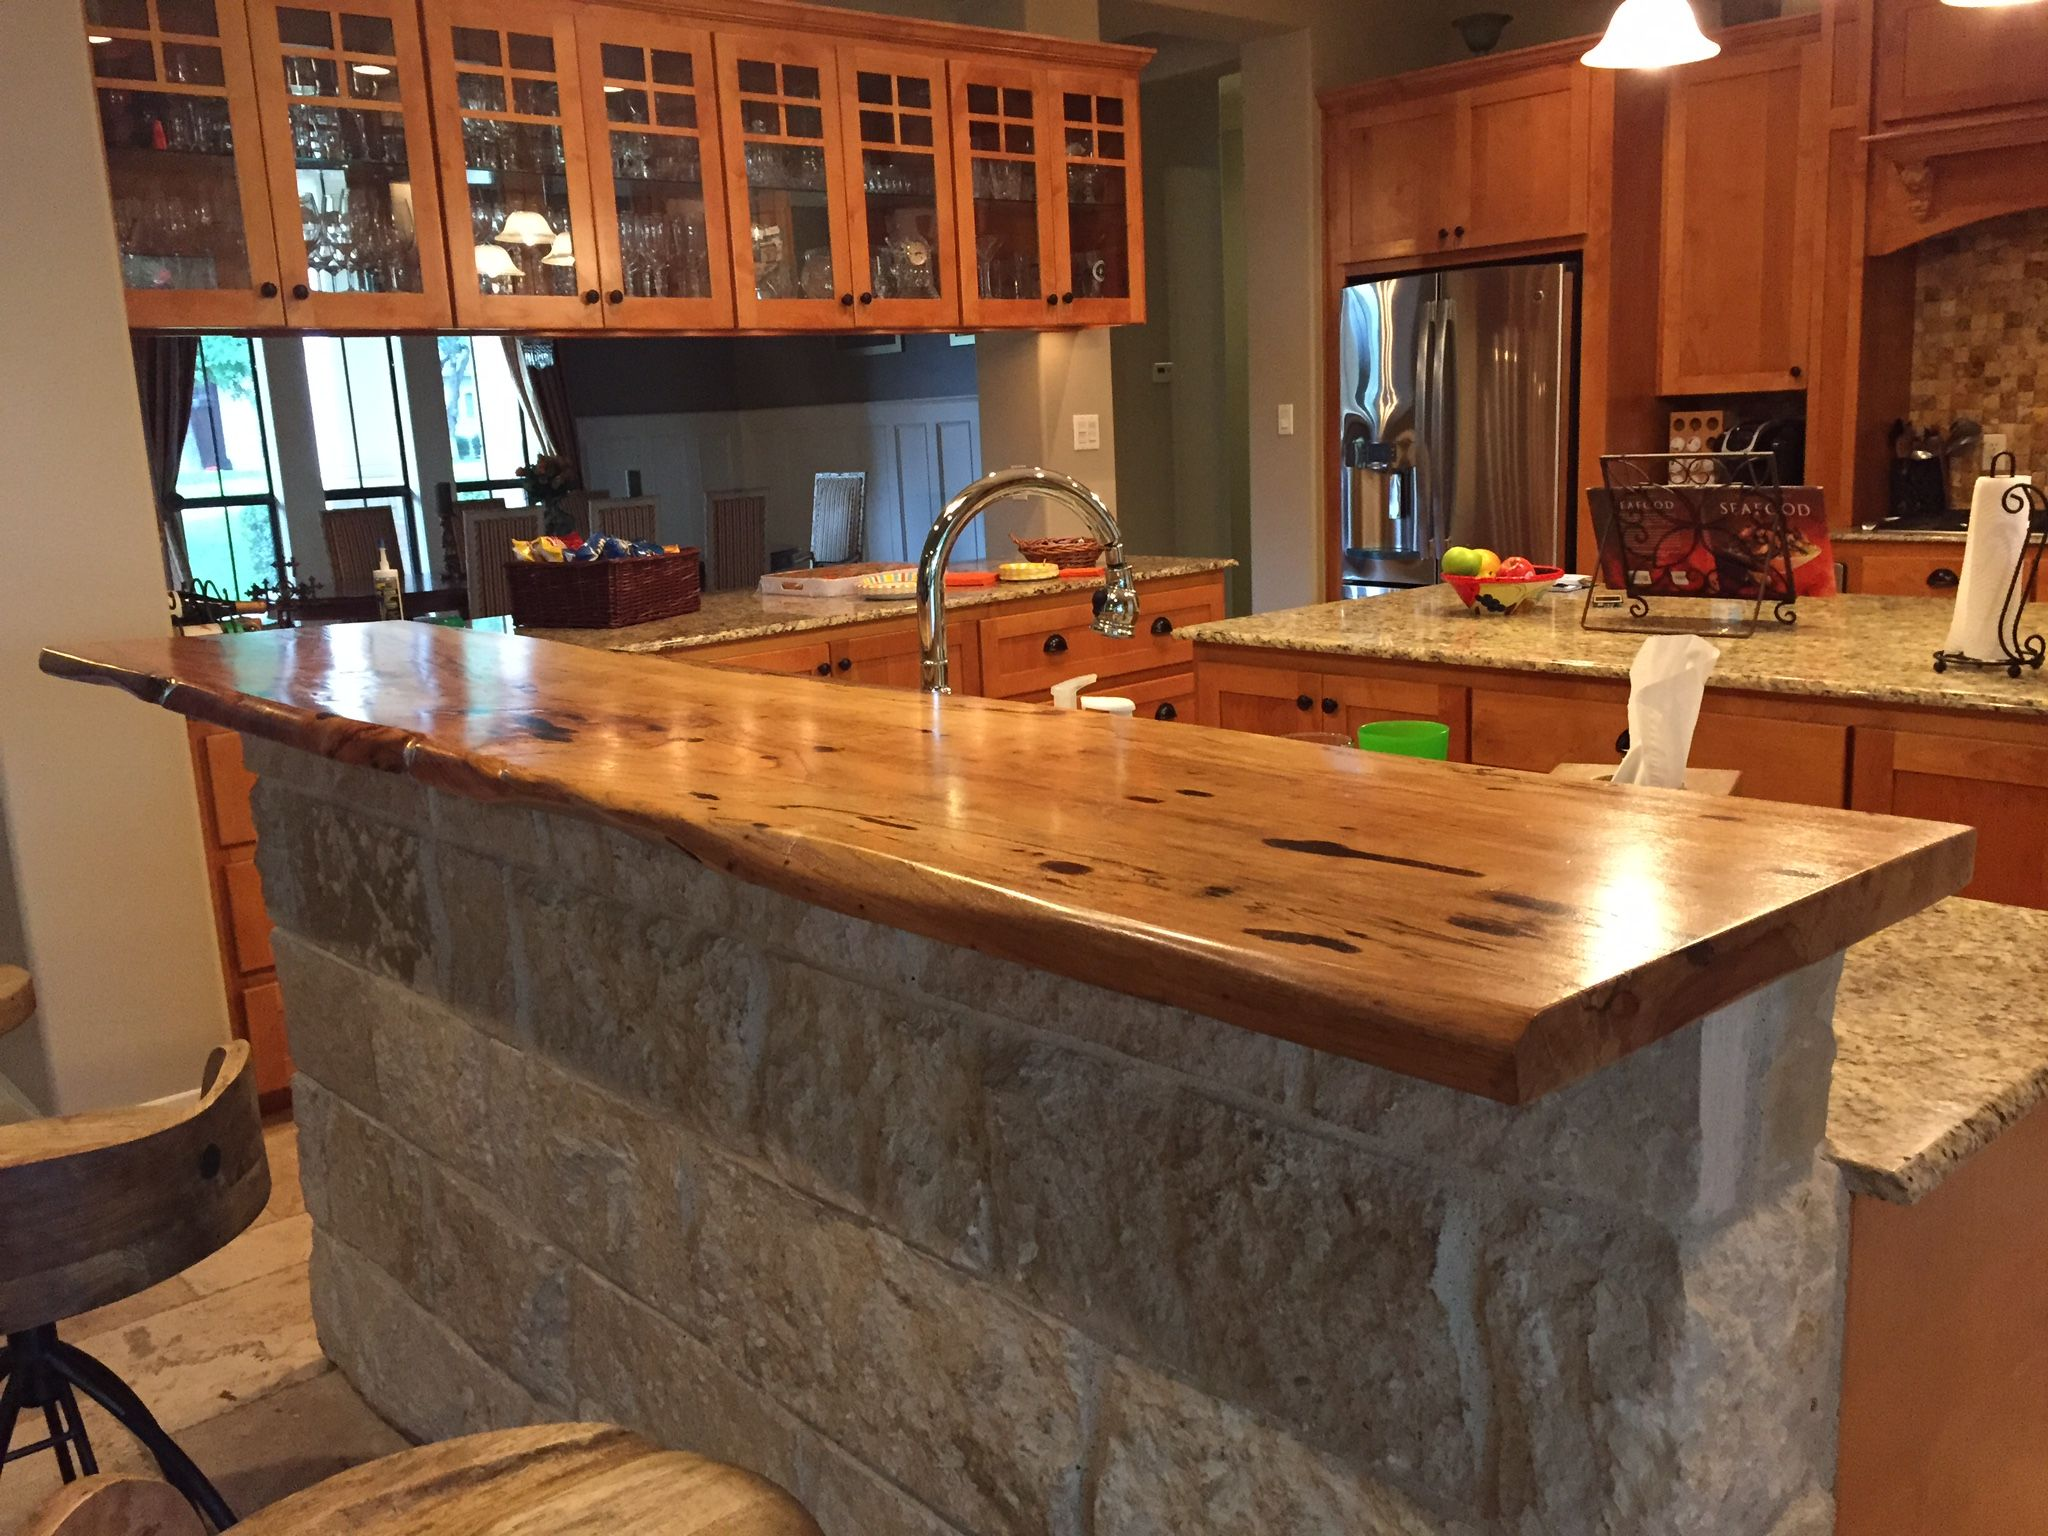 Kitchen Bars Tile Floor Designs Bar Top Pecan With Live Edge Tops Lights